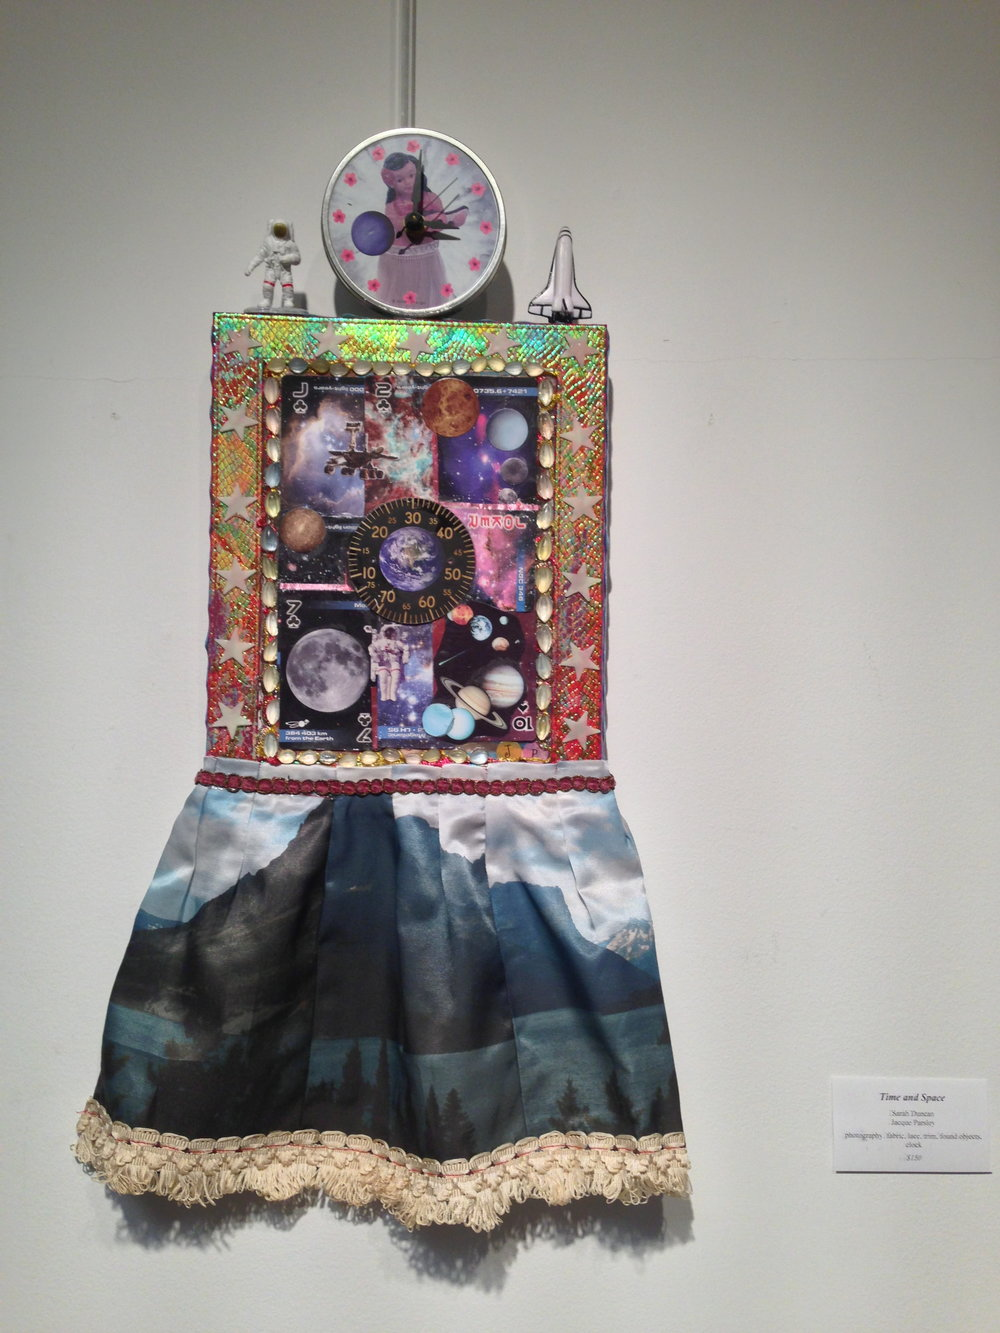 Time and Space, Sarah Duncan & Jacque Parsley, photography, fabric, lace, trim, found objects, clock, Price not available. (Photo courtesy of Kelly Rains.)